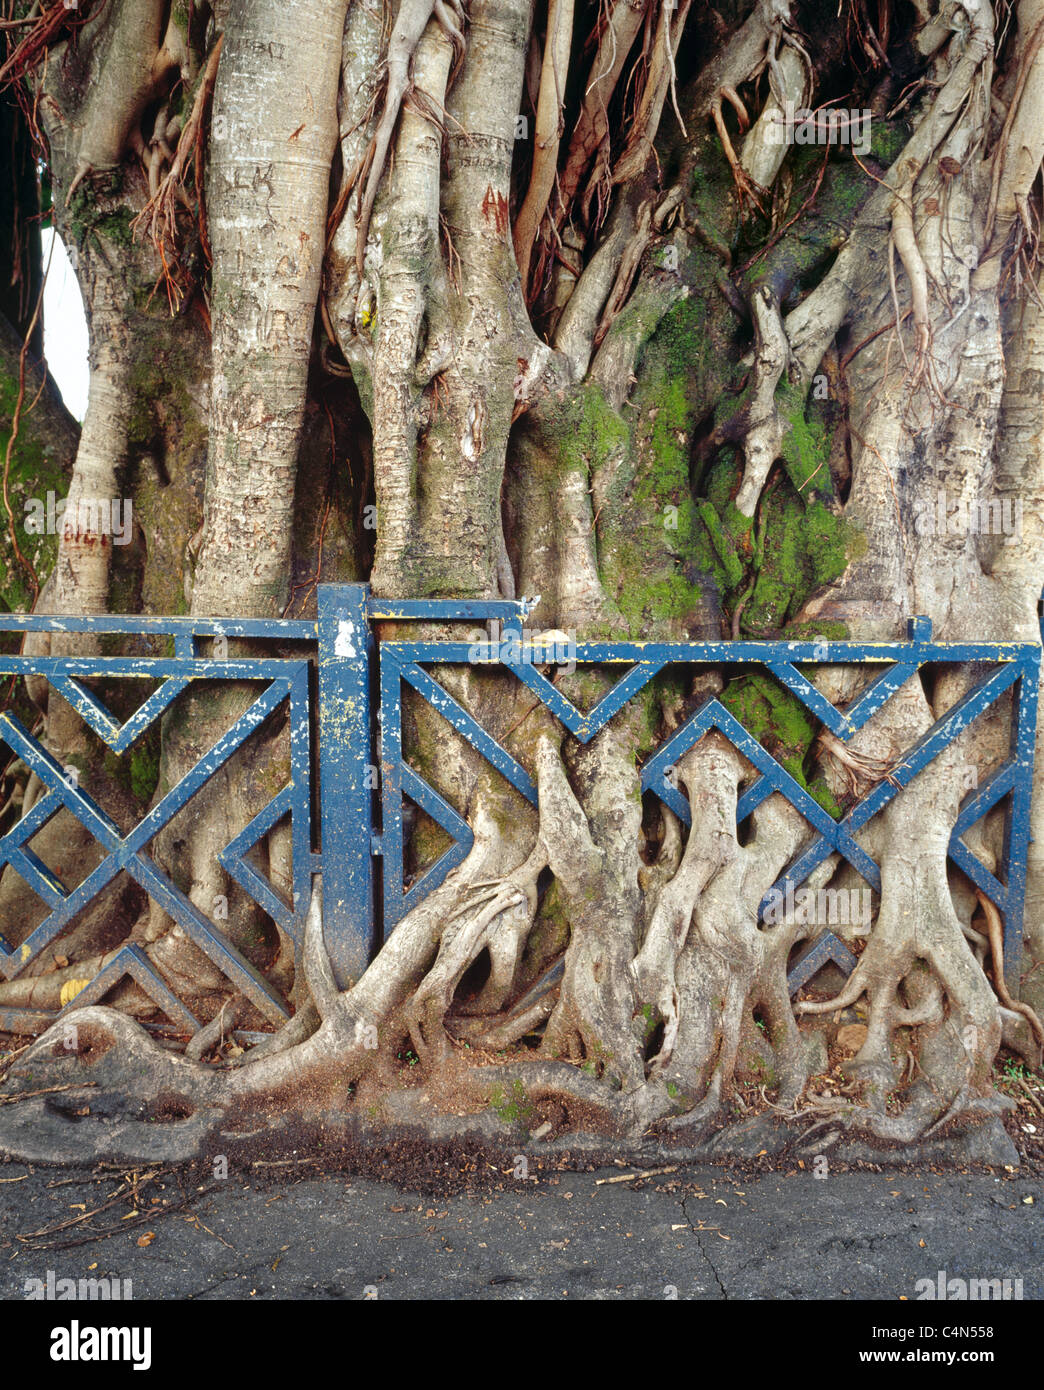 Big tree roots are growing through a iron fence - Stock Image